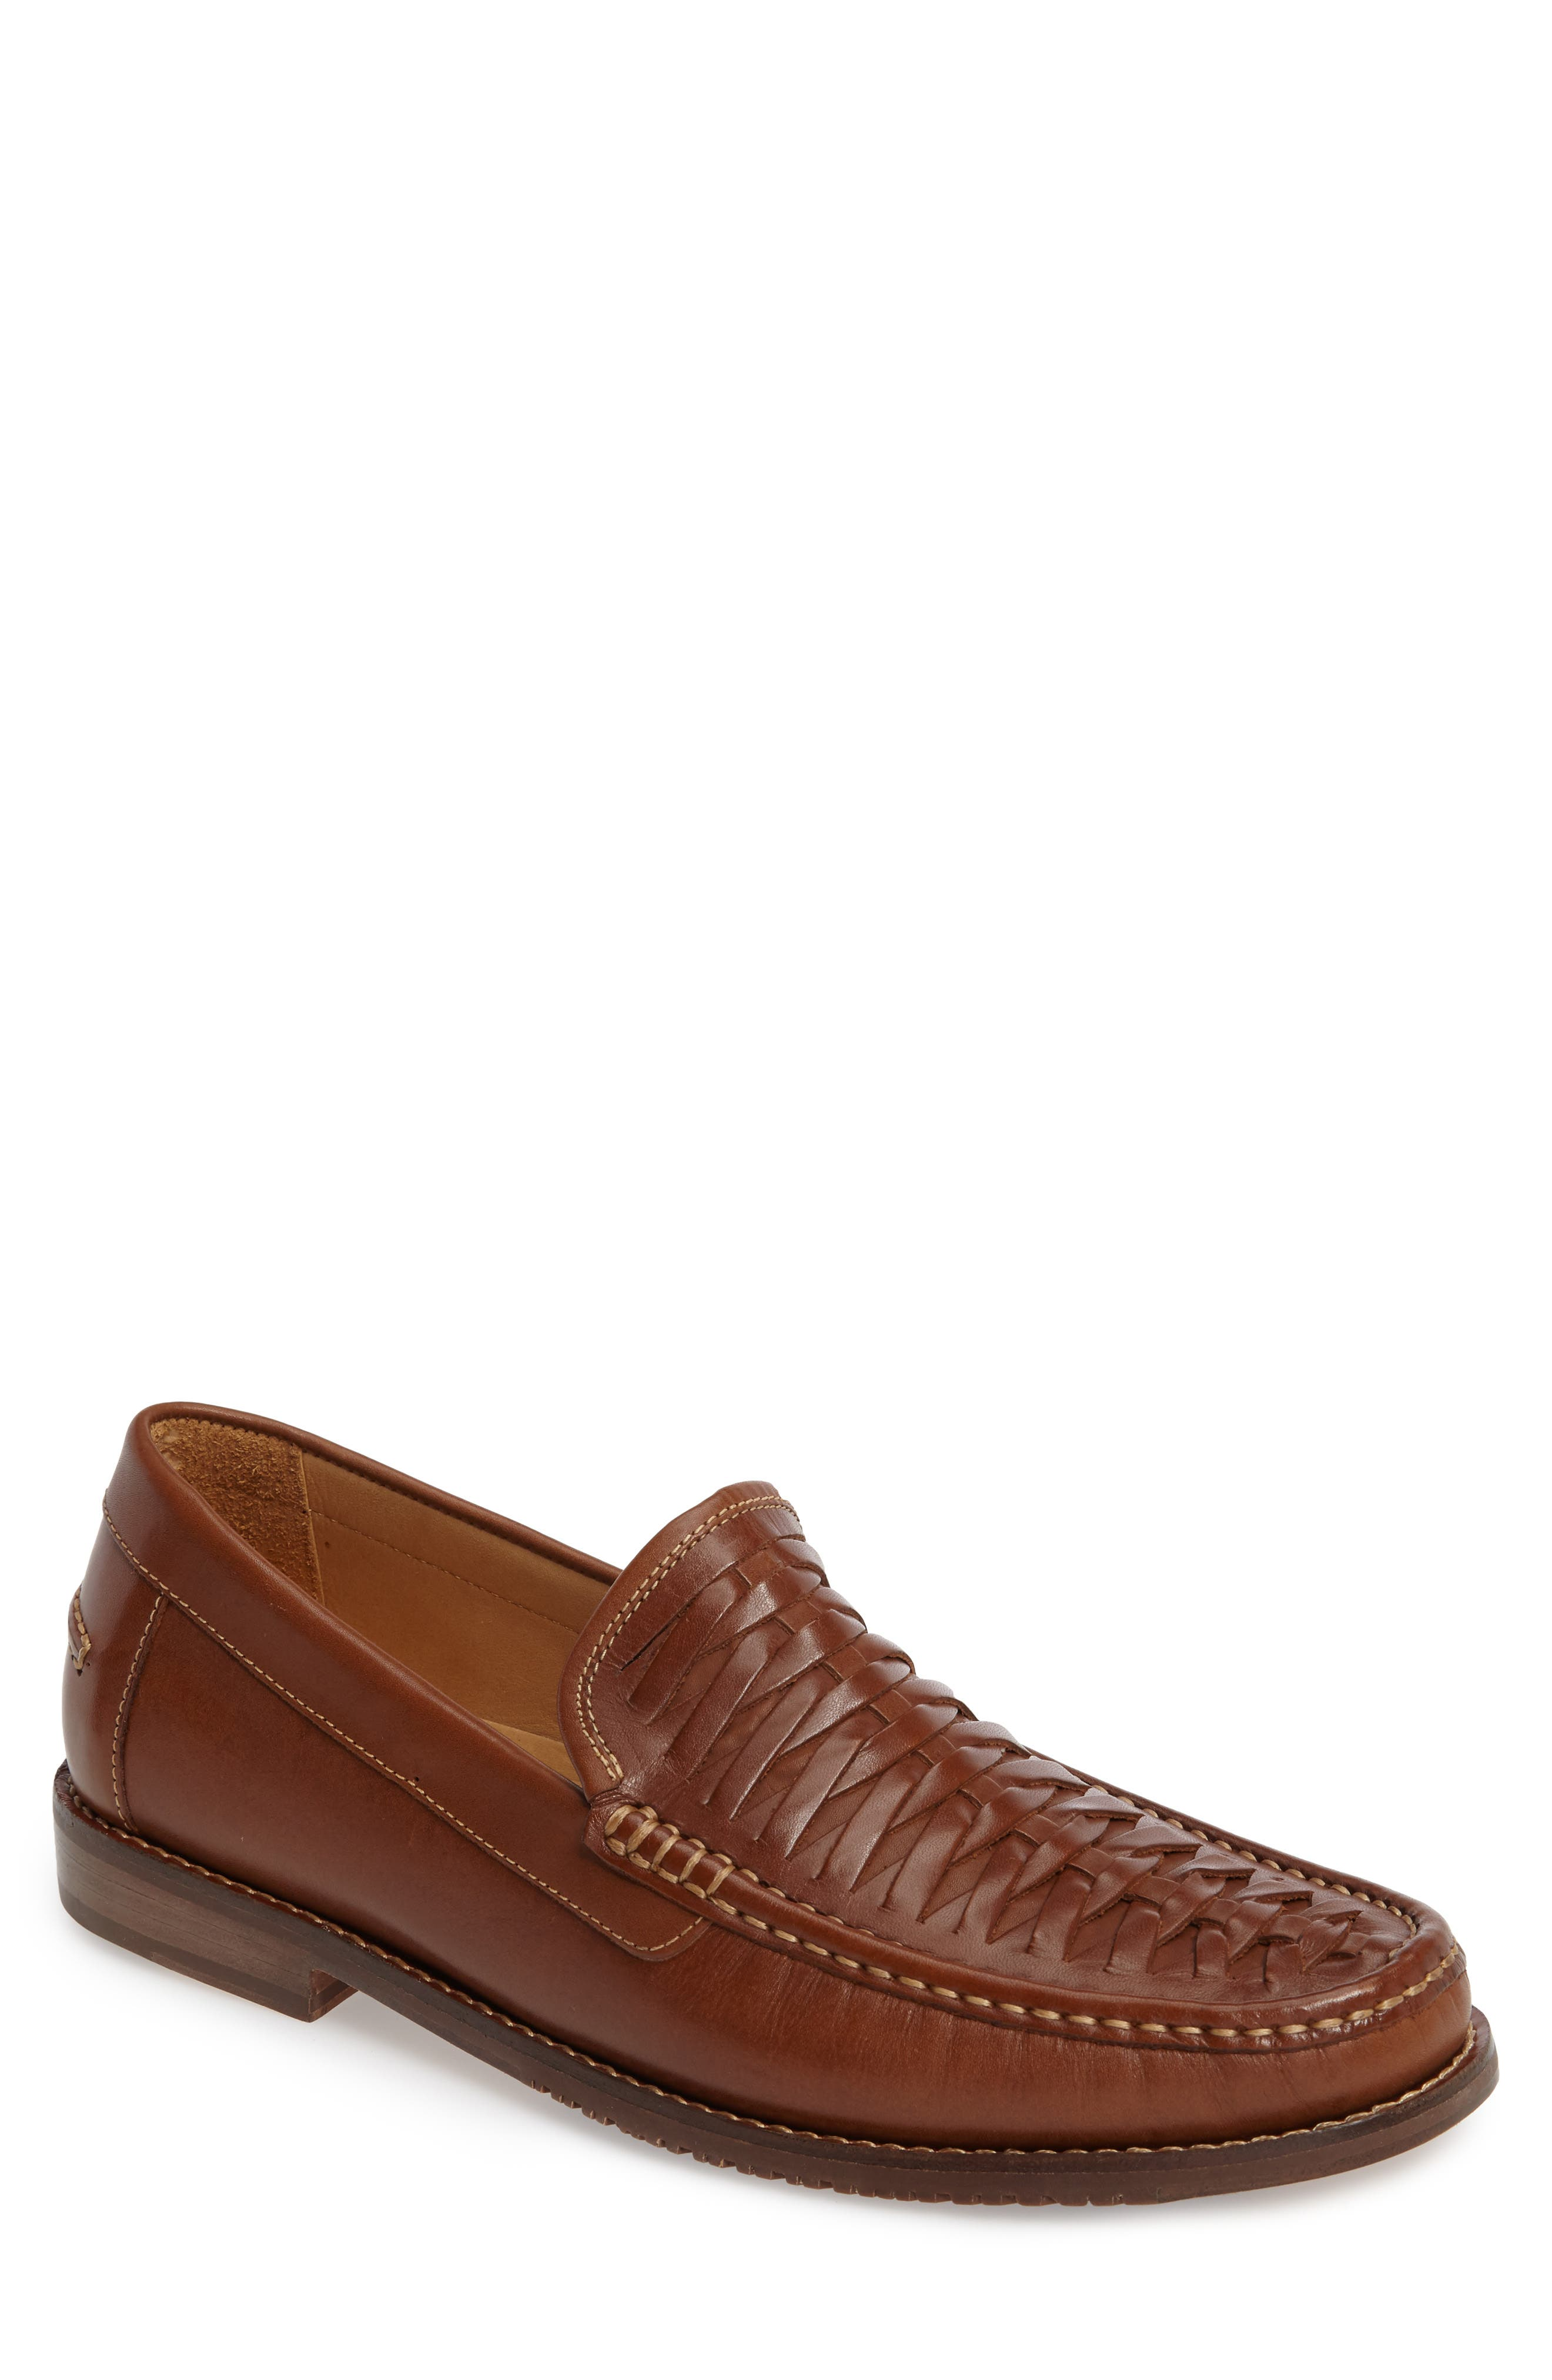 Fynn Loafer,                             Main thumbnail 1, color,                             Saddle Brown Leather